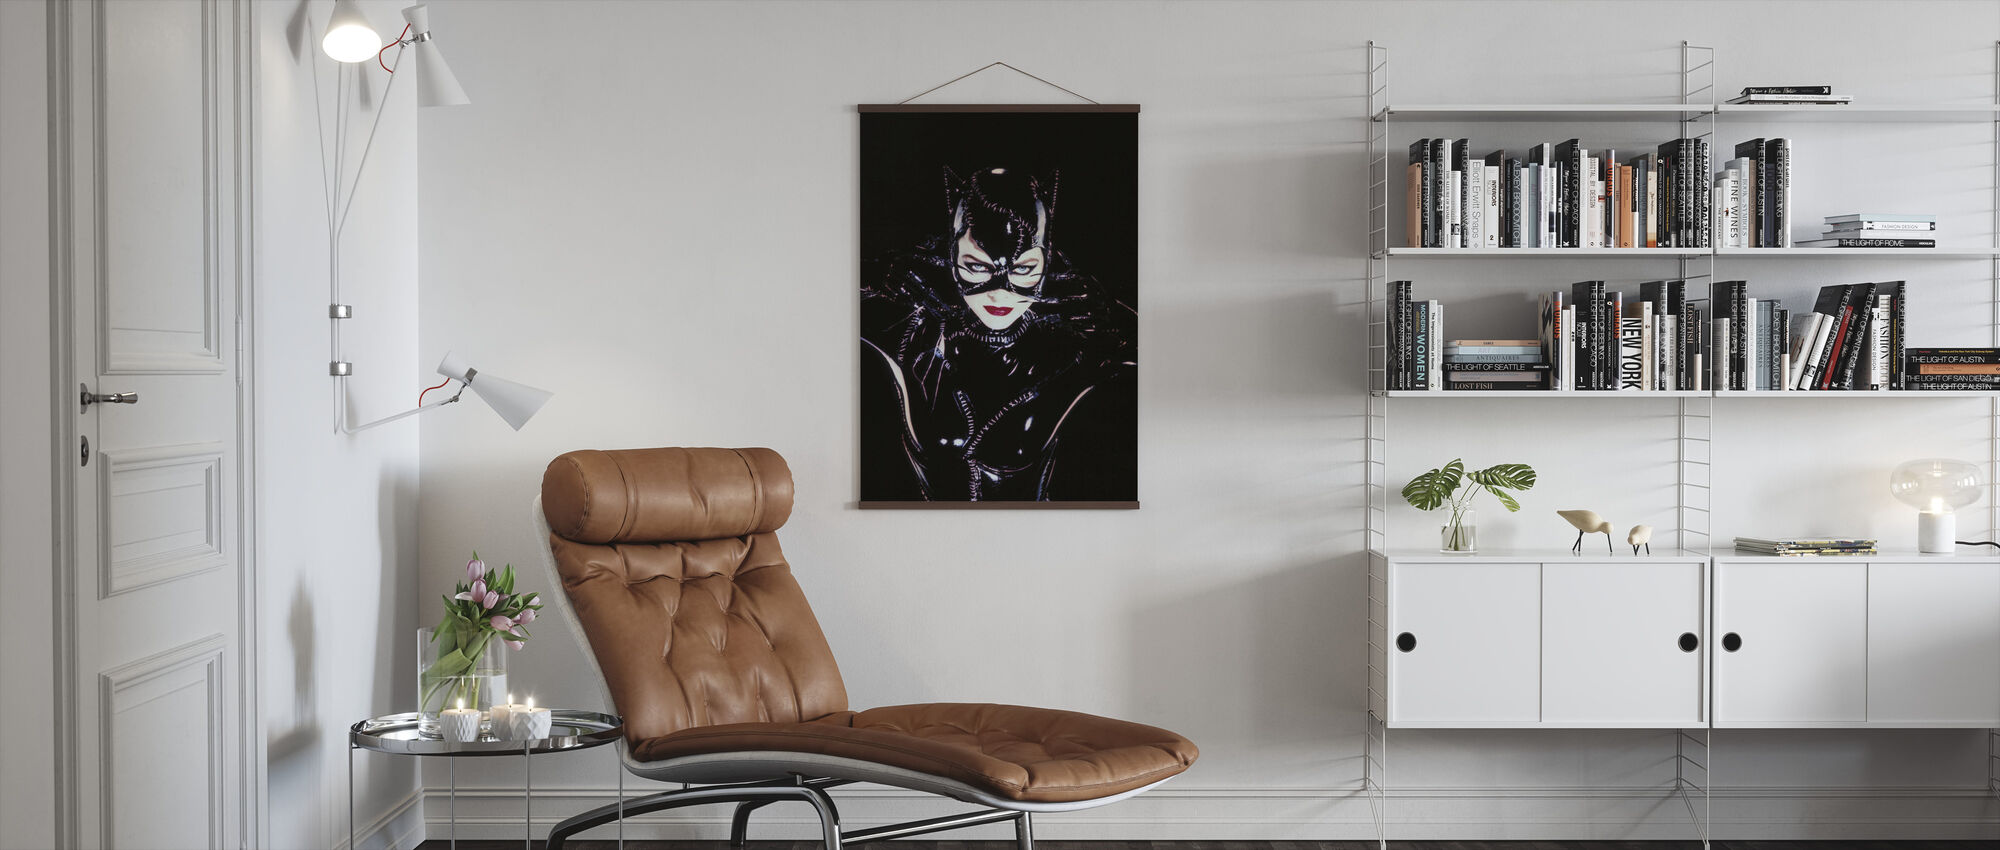 Michelle Pfeiffer en Batman Returns - Poster - Woonkamer